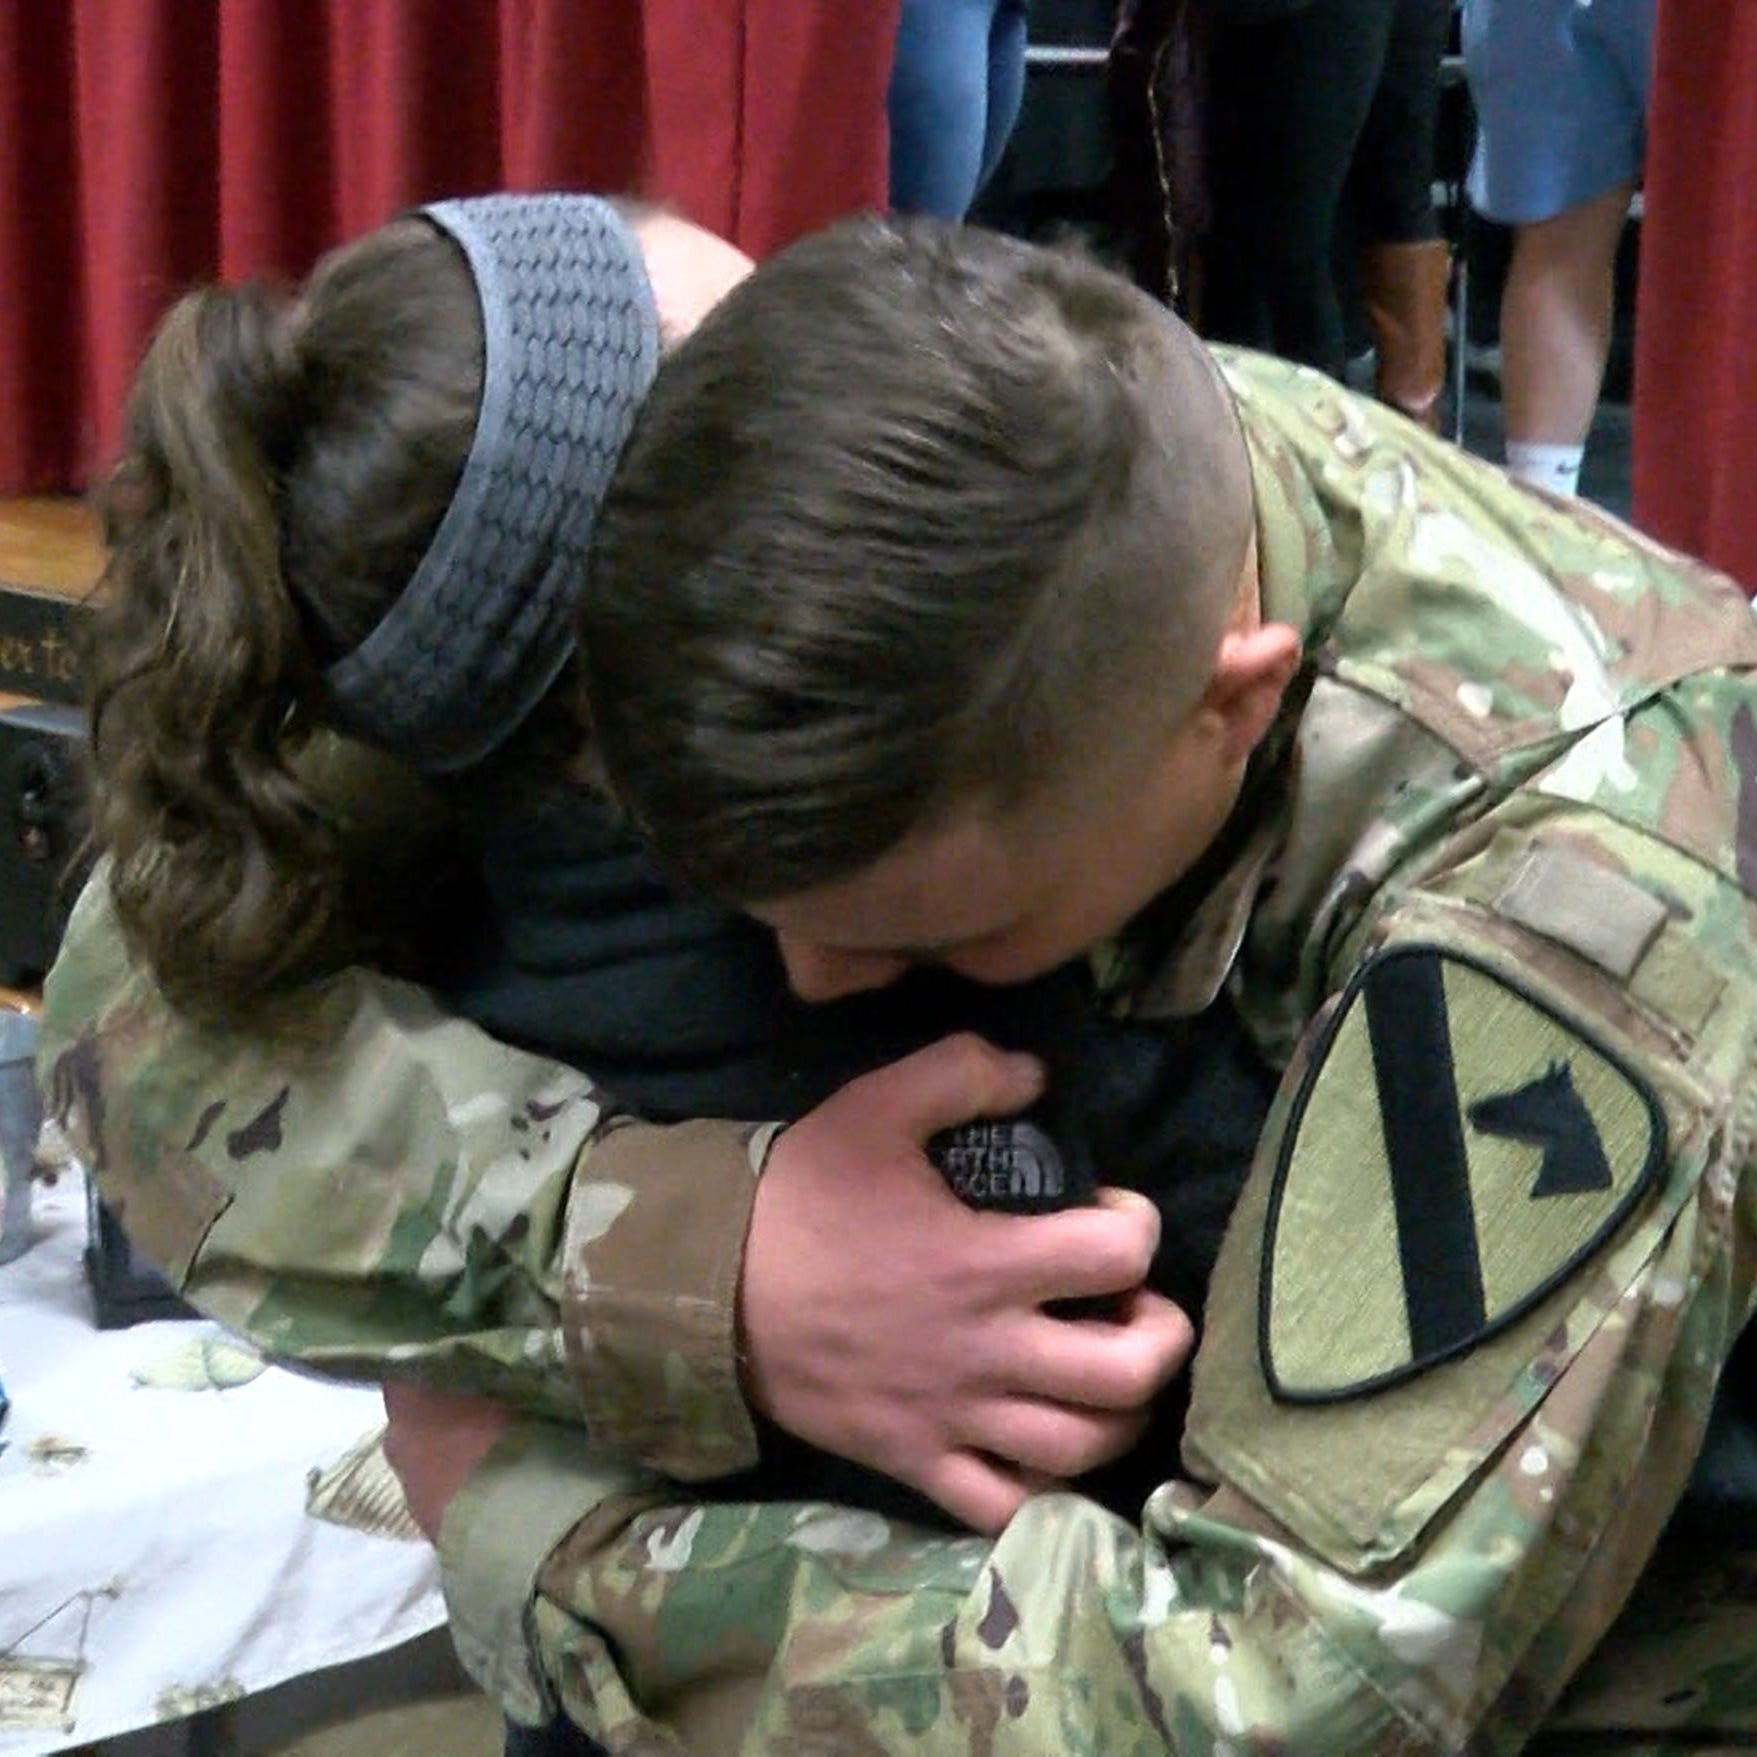 Sister in tears over soldier brother's surprise at Brick middle school